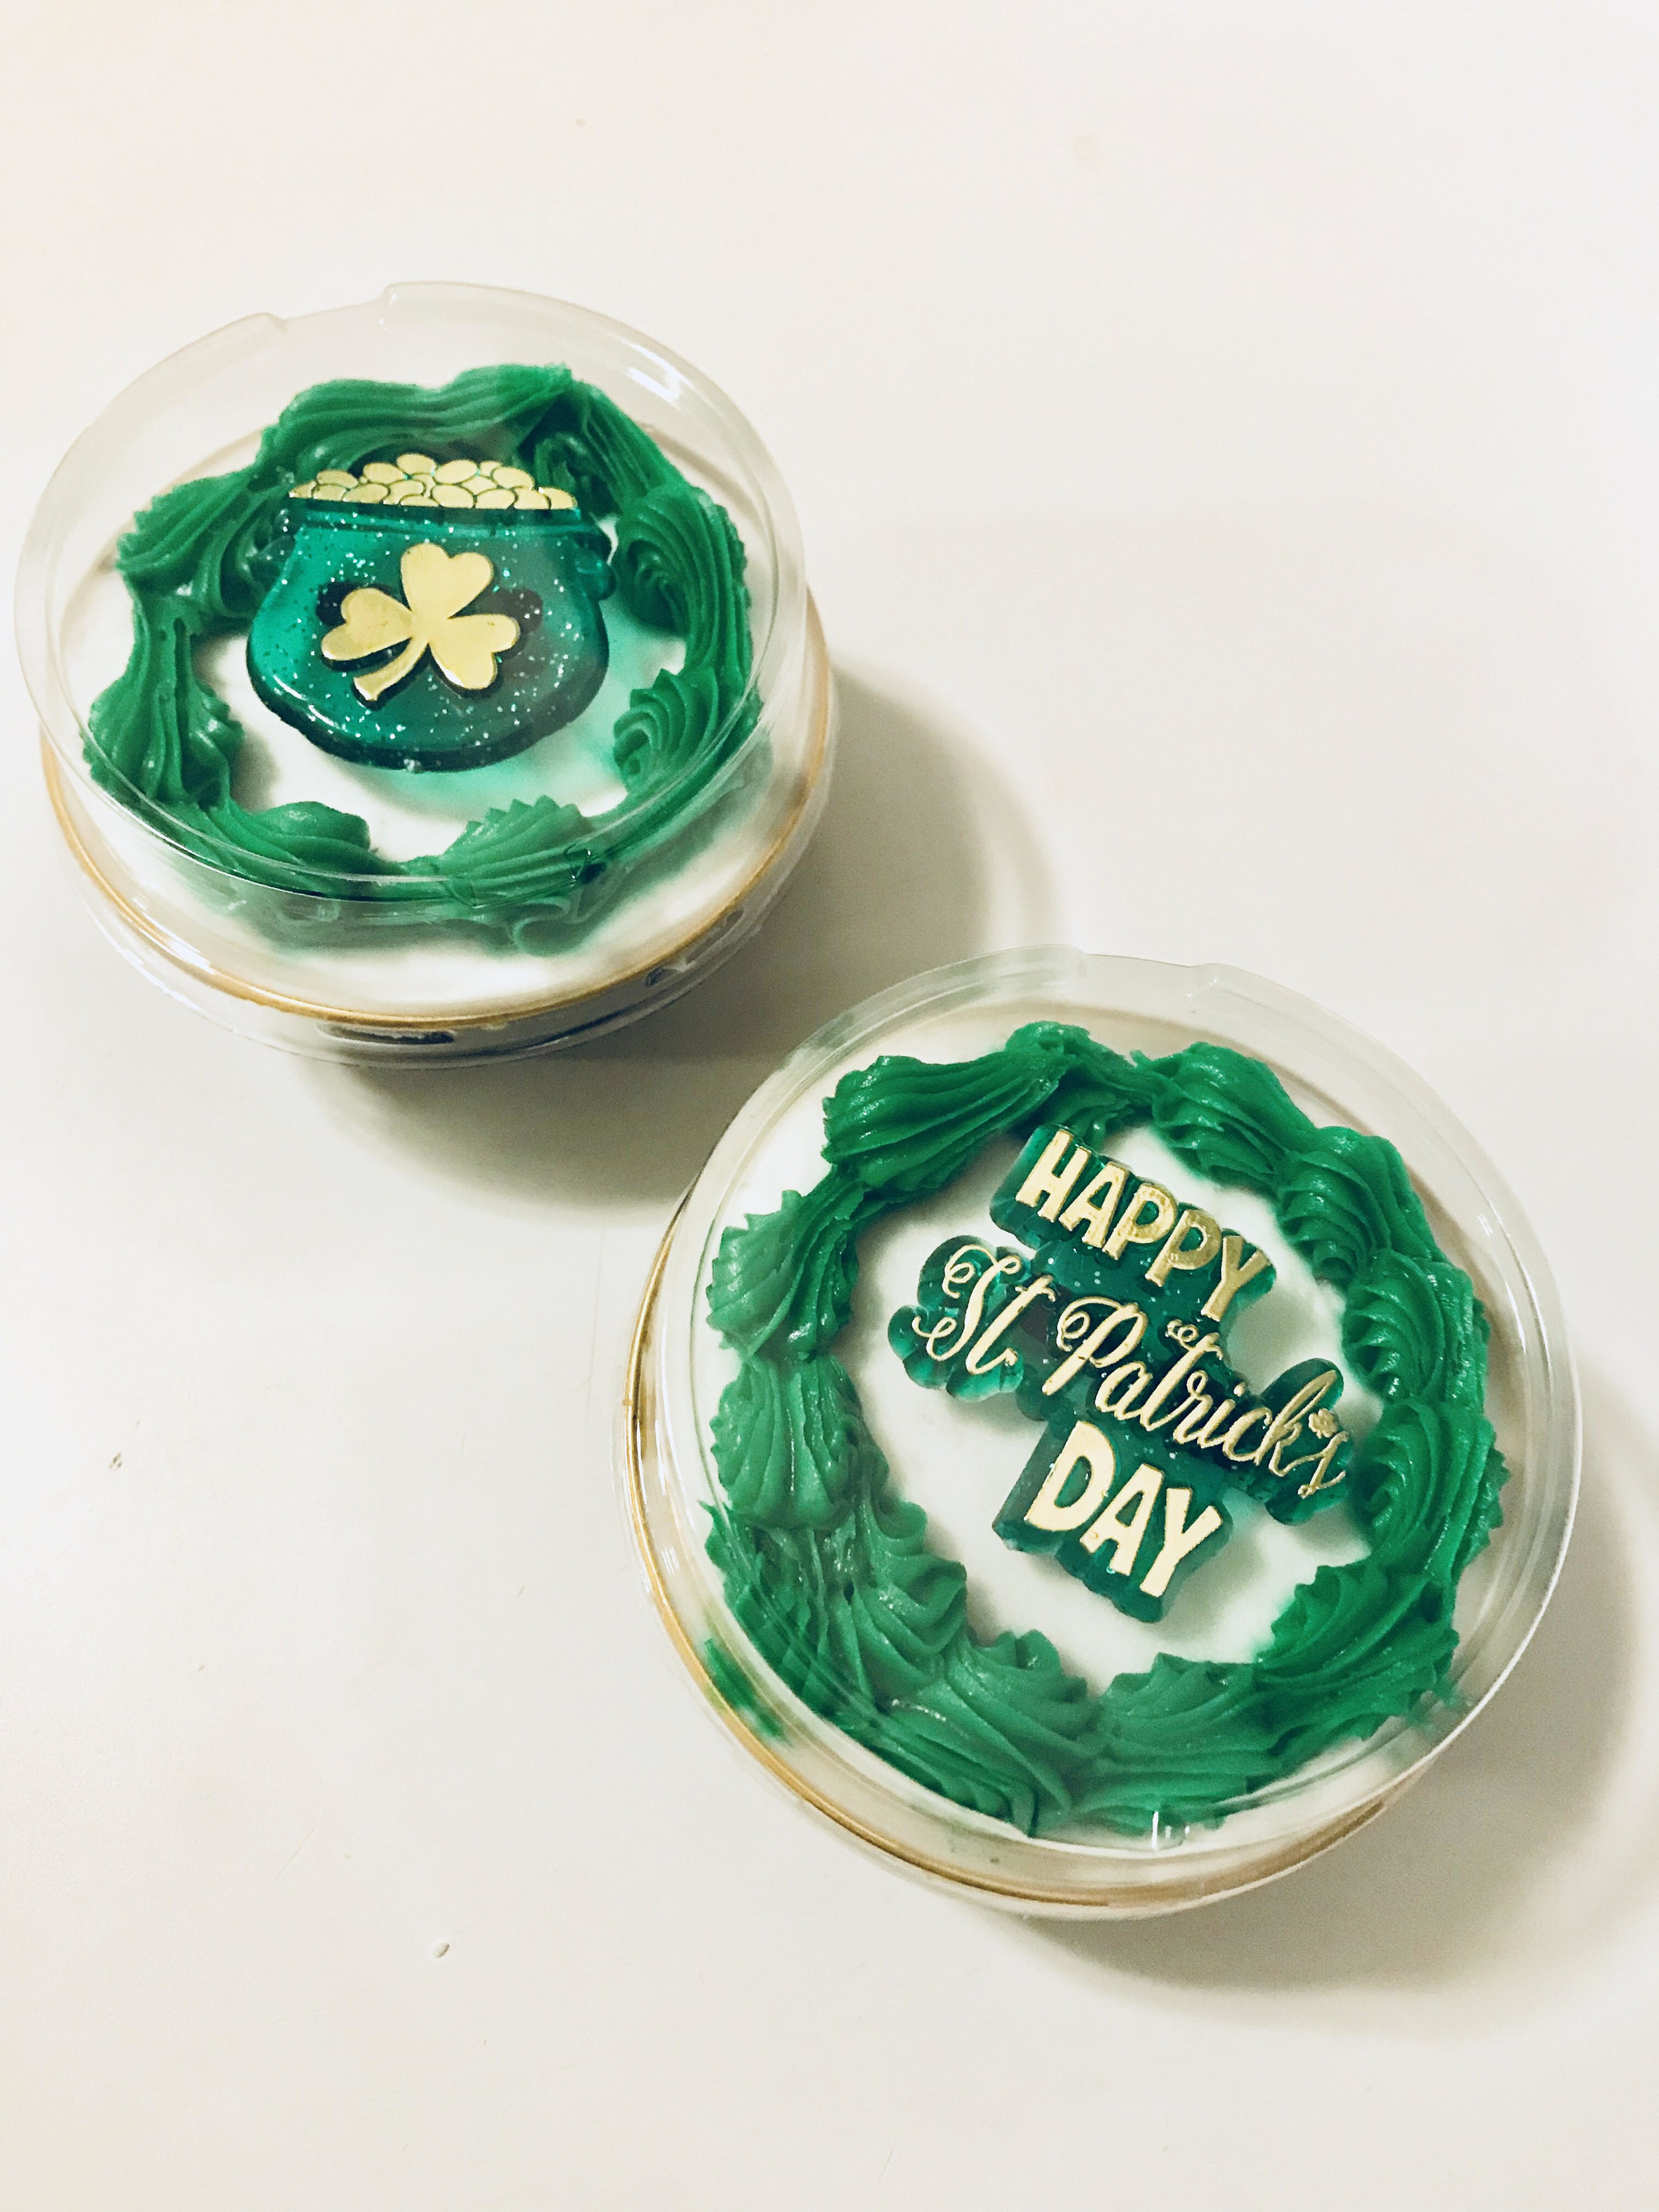 4. St. Patrick's Day Treats - Mini cupcakes from McHappy's Bake Shoppe to celebrate the holiday.